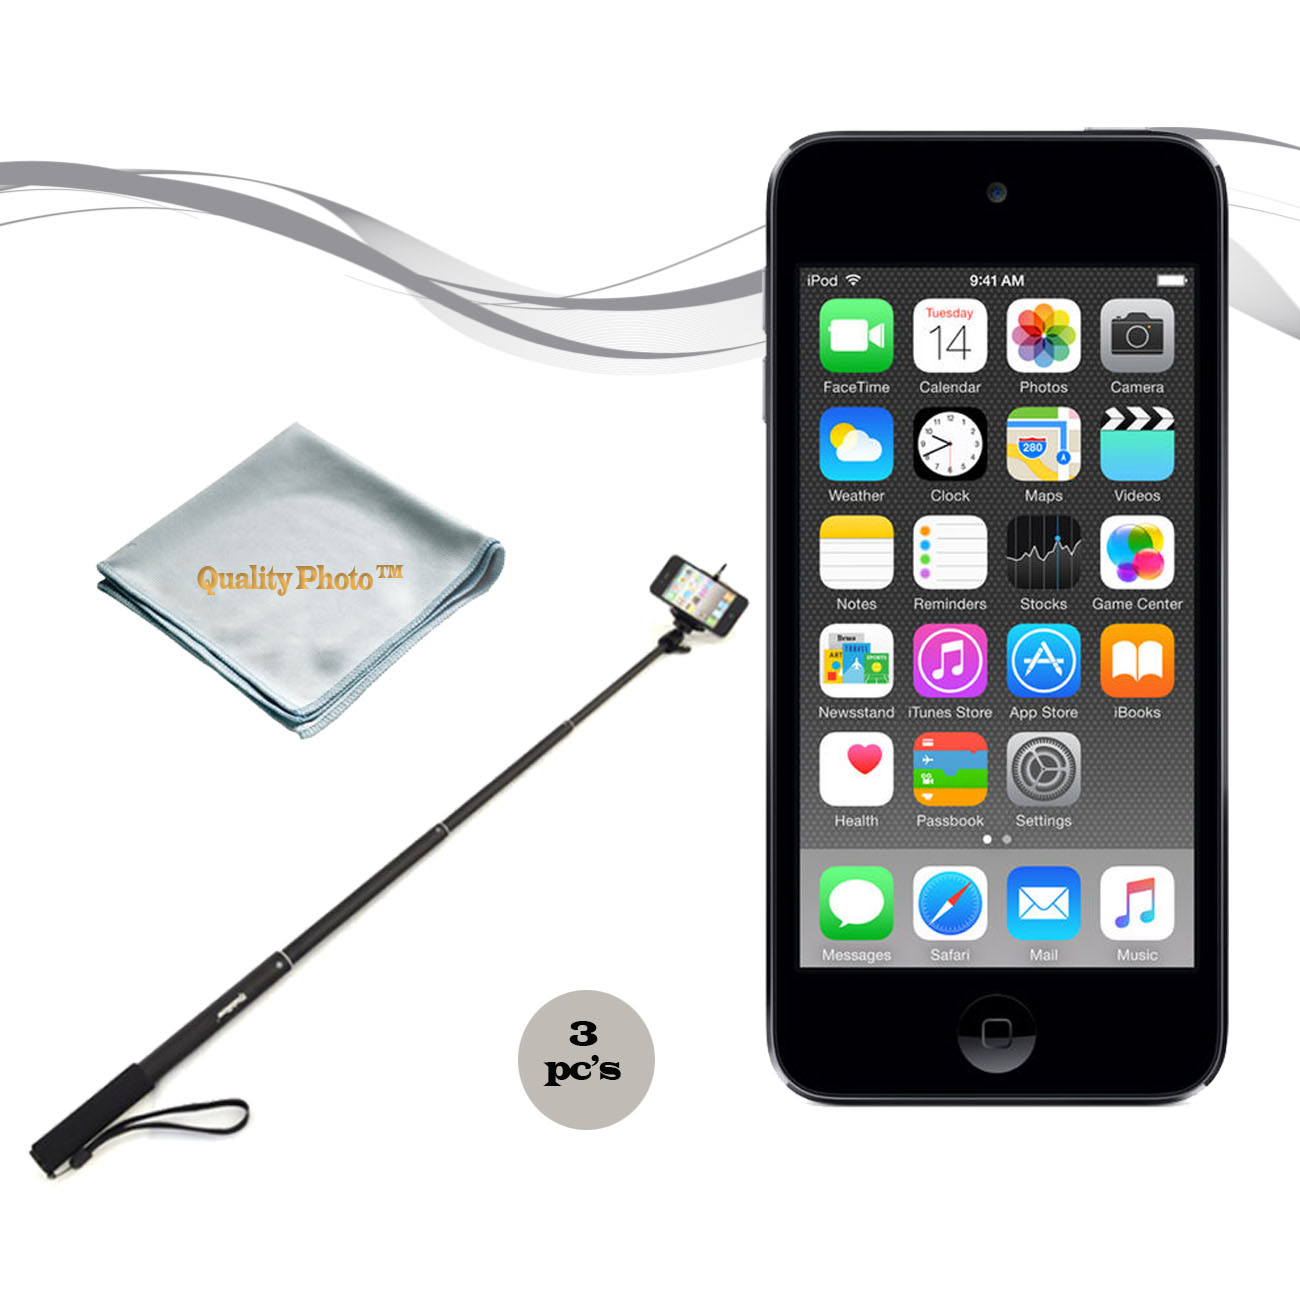 Apple Ipod Touch 32gb Space Gray (6th Generation) with a Istabilizer Istmp01 Monopod and Quality Photo Microfiber Cloth